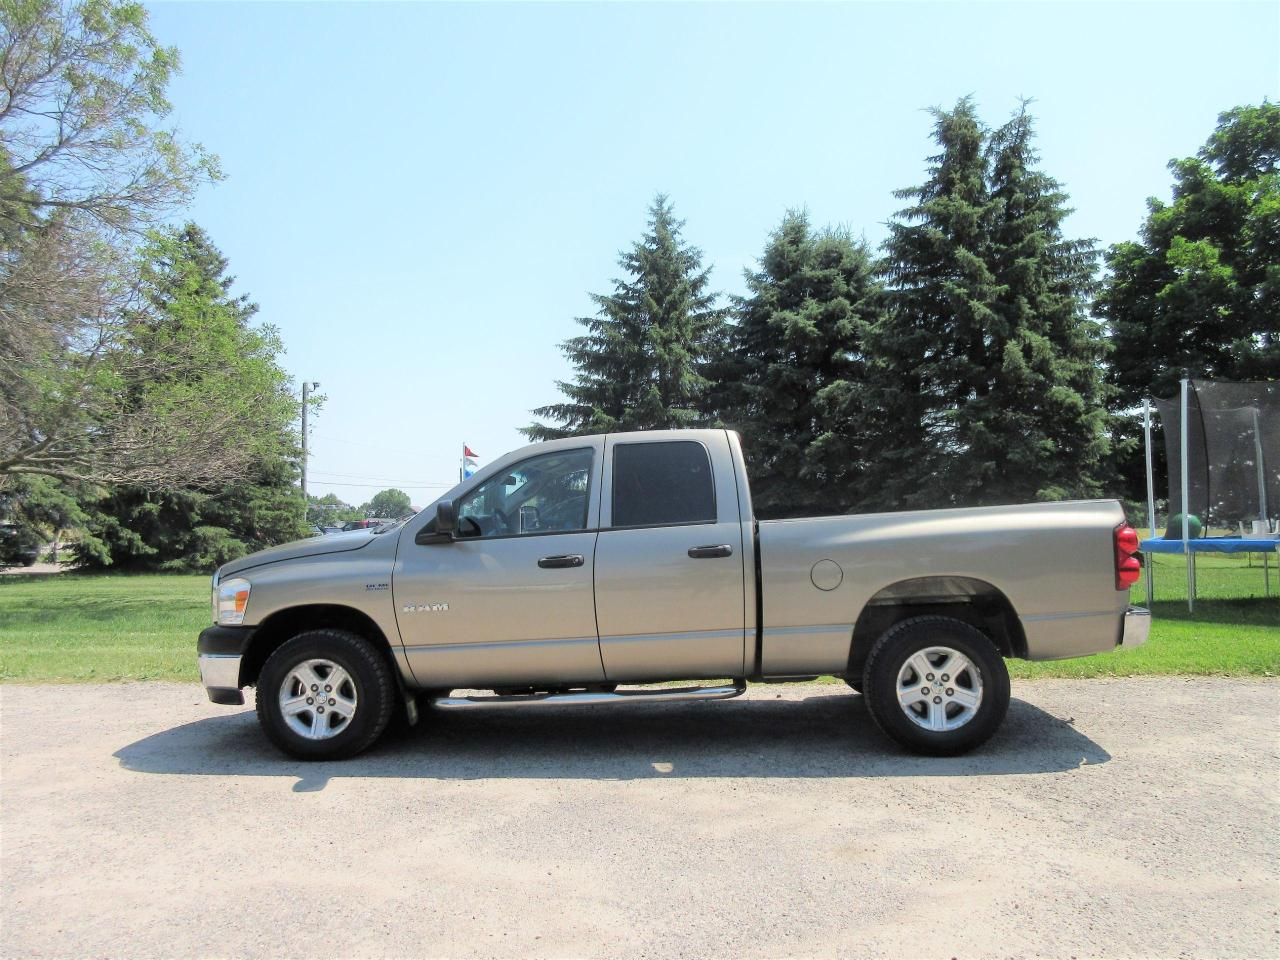 used 2008 dodge ram 1500 slt 4wd v8 for sale in thornton, ontario carpages.ca